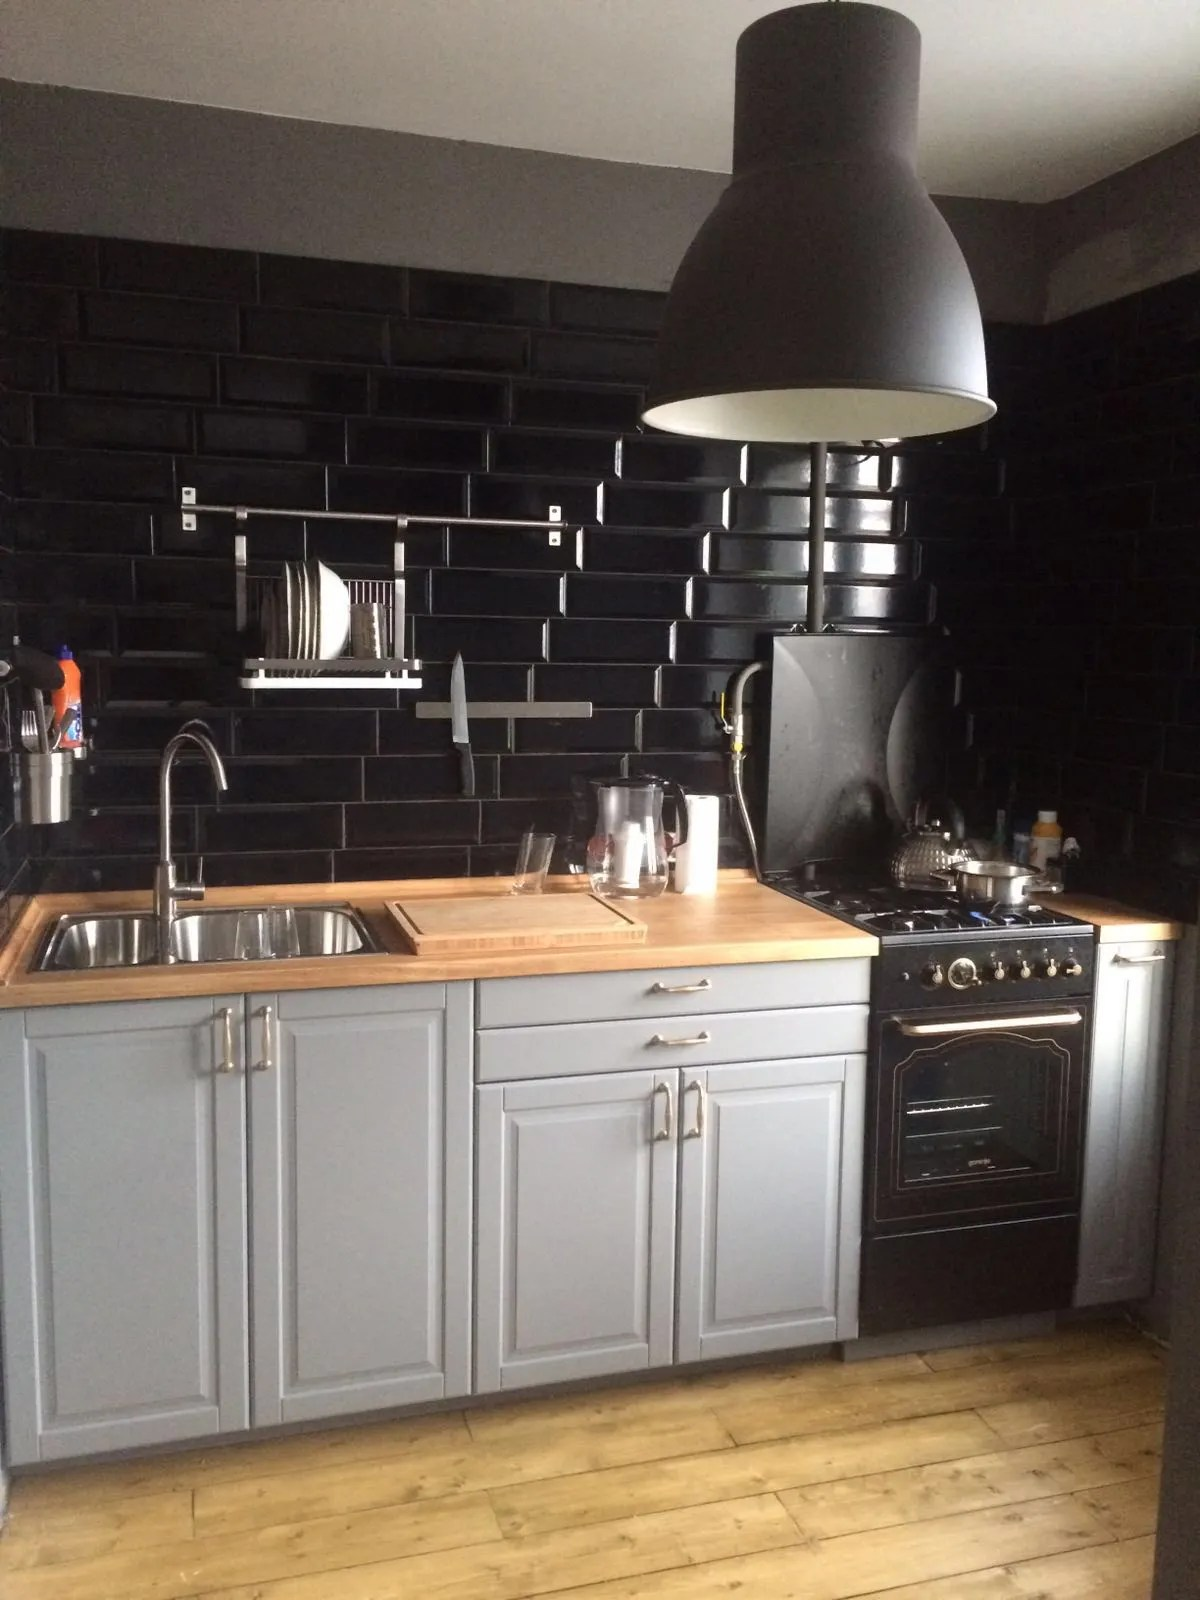 How to Buy a Kitchen in Ikea